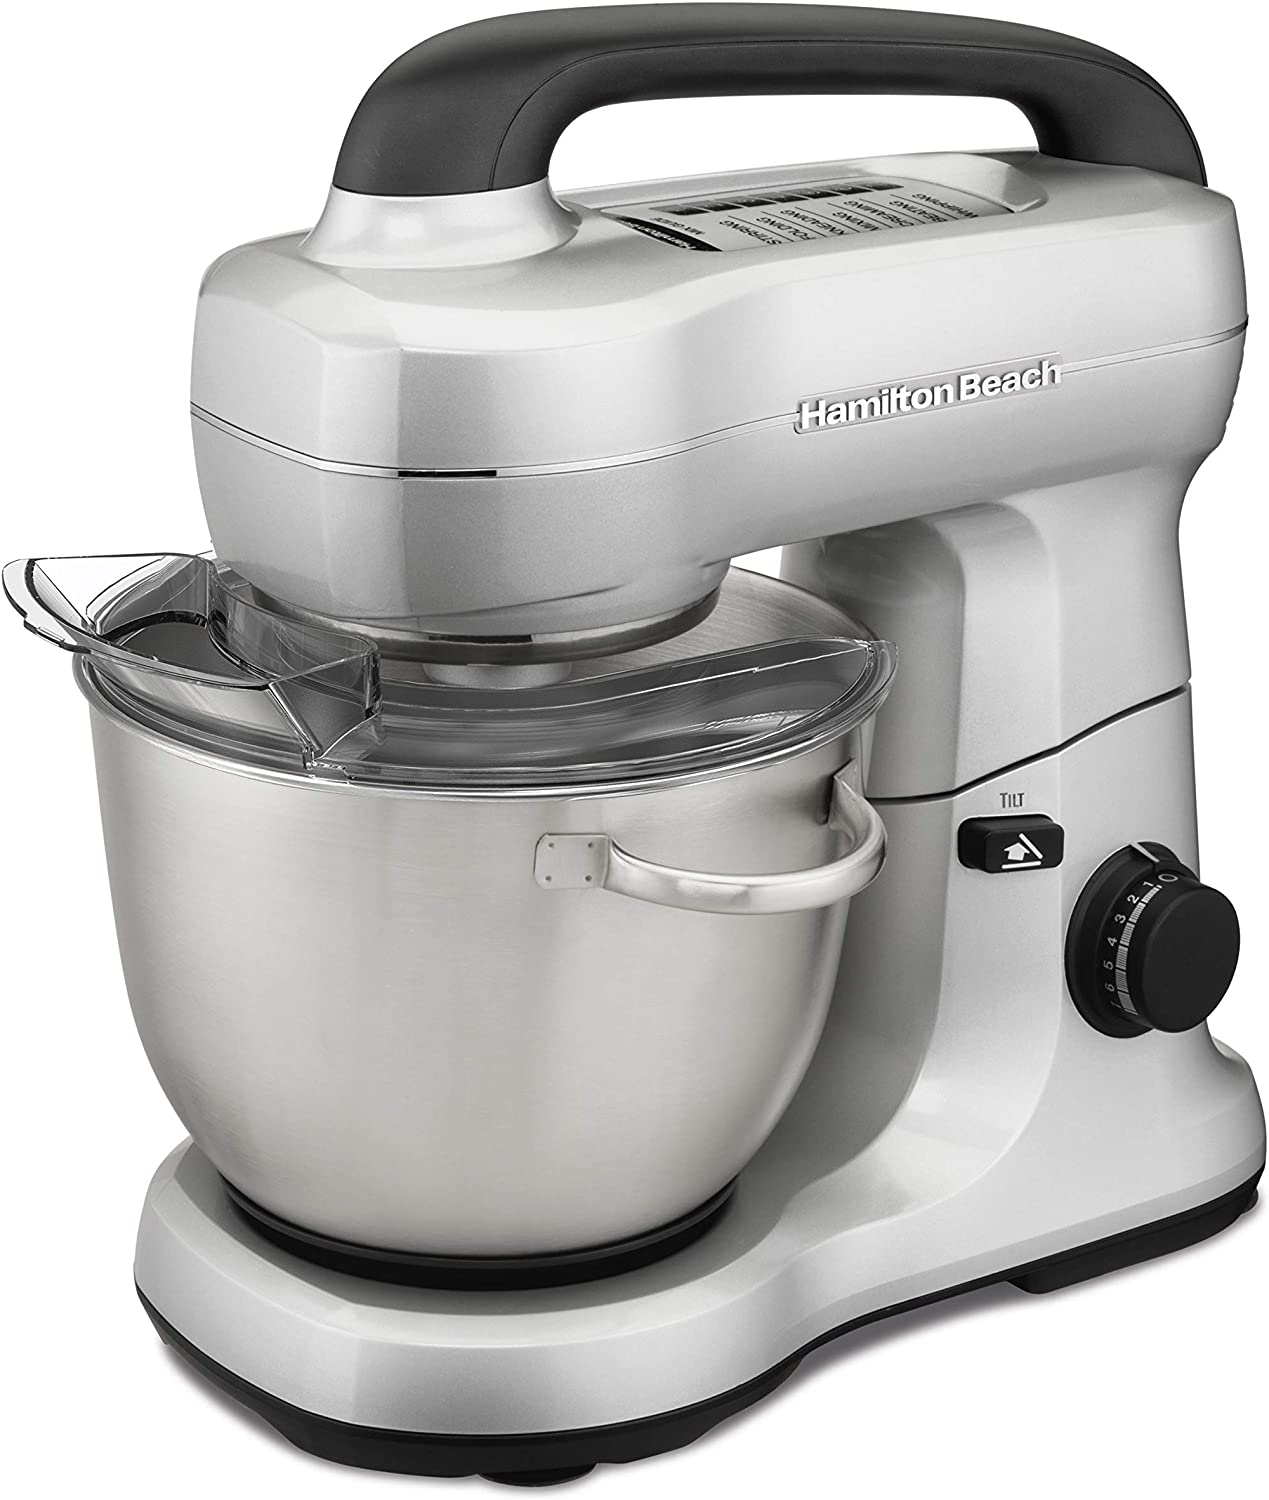 Hamilton Beach Electric Stand Mixer, 4 Quarts, 7 Speeds with Whisk, Dough Hook, Flat Beater Attachments, Splash Guard, Silver 63392